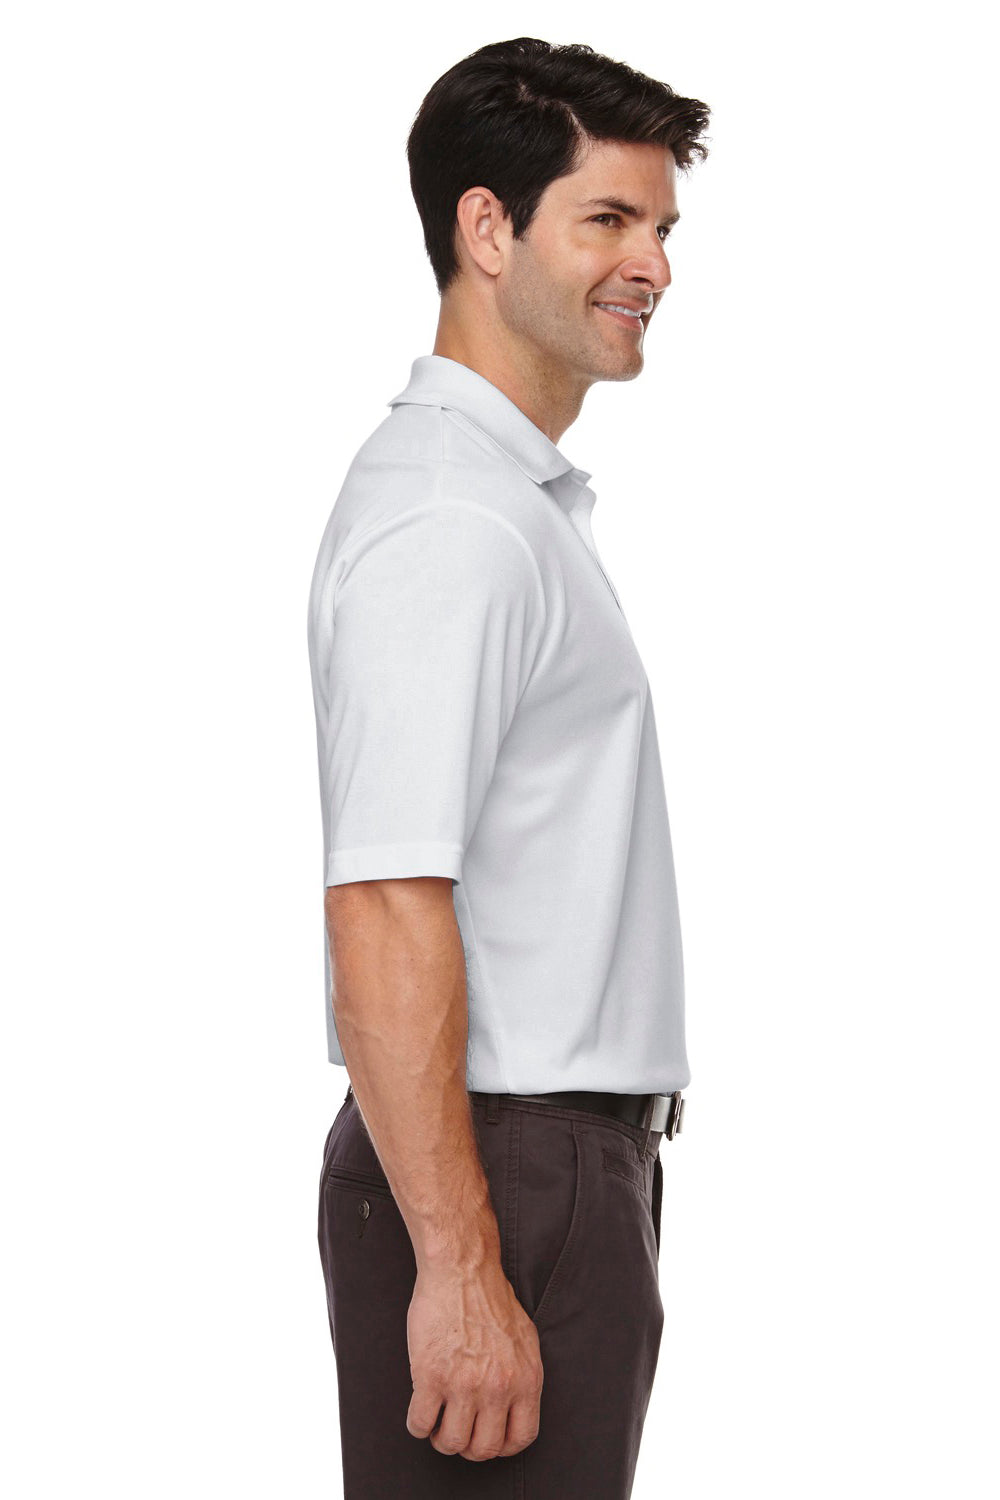 Core 365 88181 Mens Origin Performance Moisture Wicking Short Sleeve Polo Shirt Platinum Grey Side